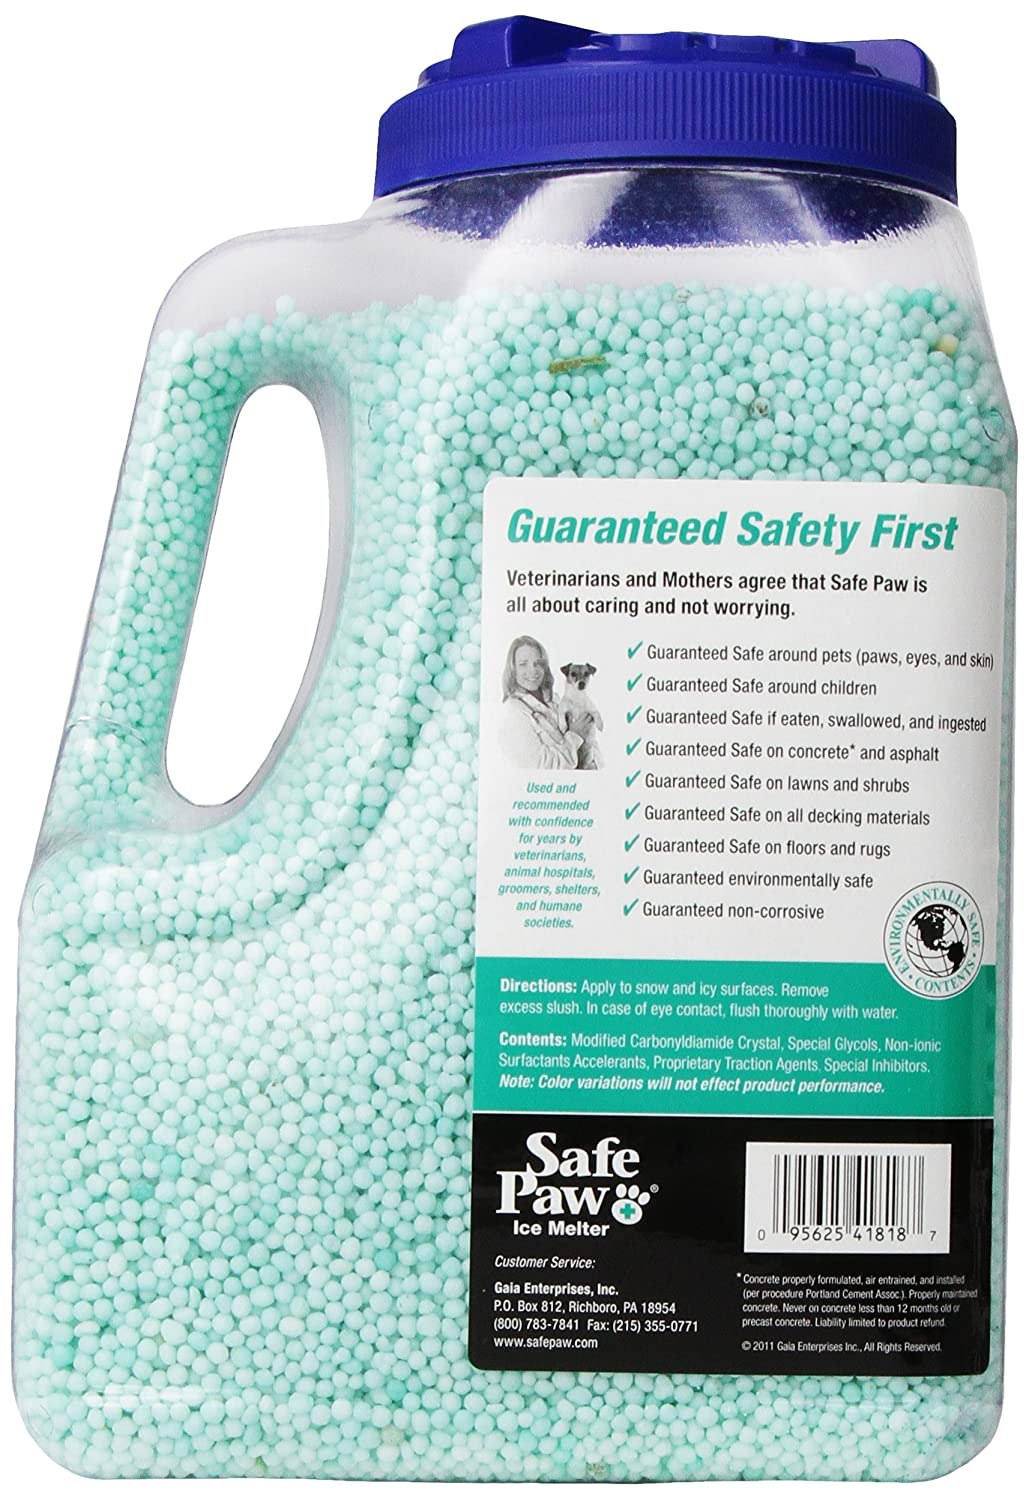 Amazoncom Safe Paw NonToxic Ice Melter Pet Safe 8 lbs 3 oz